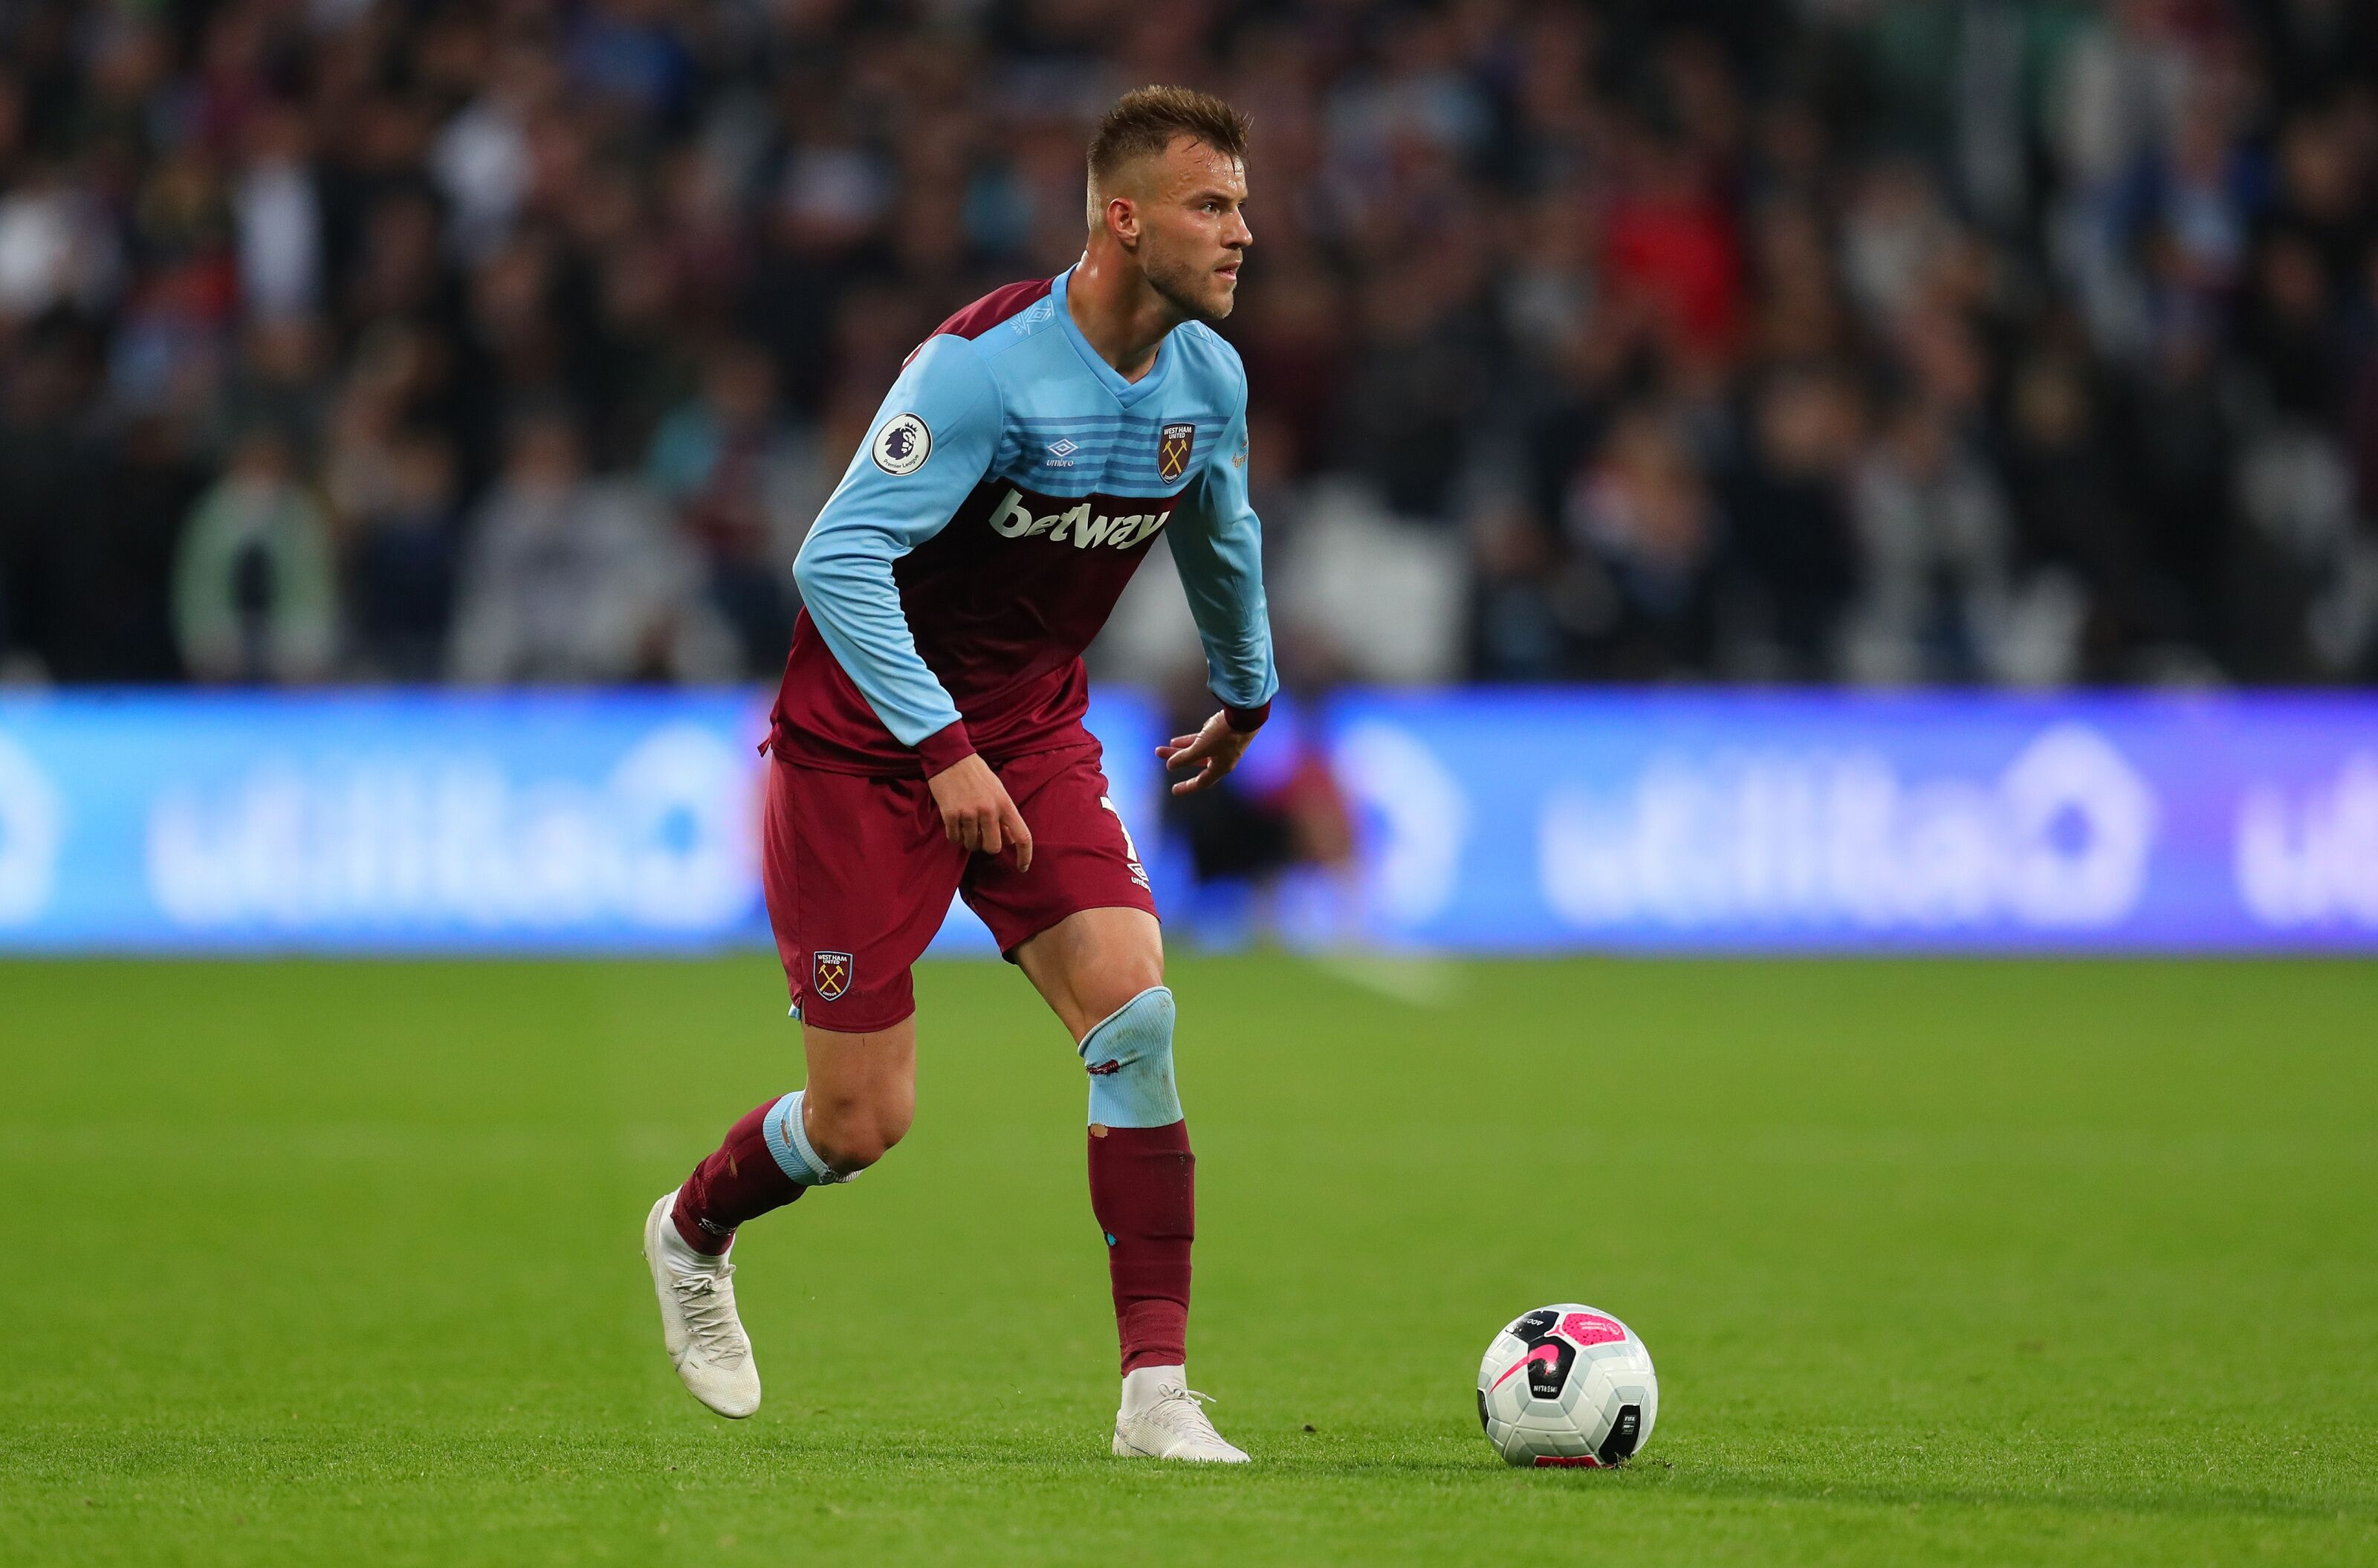 Which players make up the marquee match up for West Ham vs. Newcastle